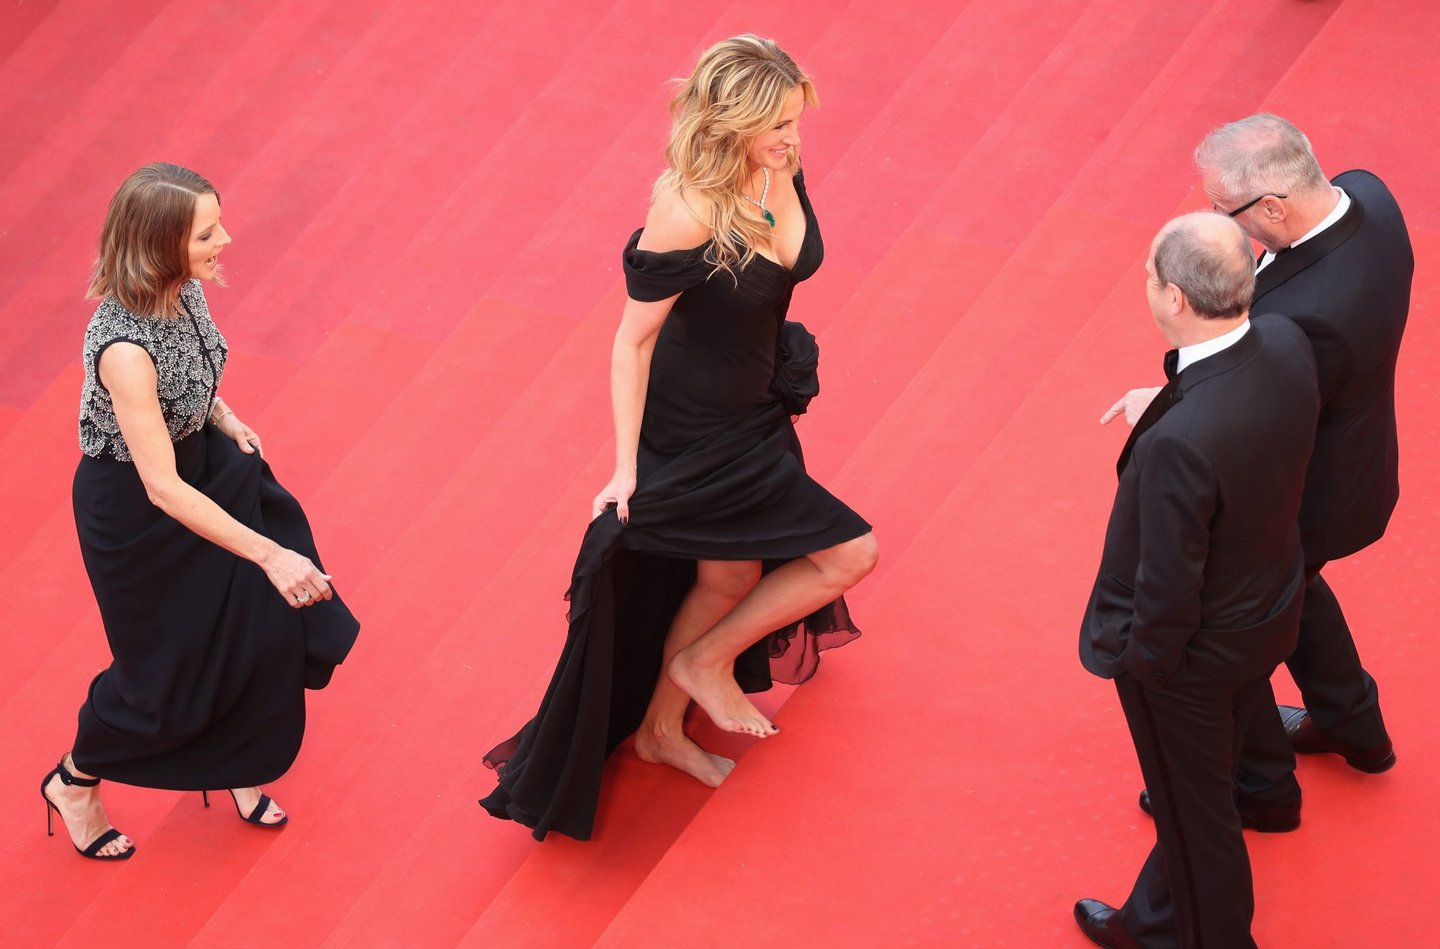 CANNES, FRANCE - MAY 12: Producer Jodie Foster (L) and actress Julia Roberts (C) walk up upon their arrival at the 'Money Monster' premiere during the 69th annual Cannes Film Festival at the Palais des Festivals on May 12, 2016 in Cannes, France. (Photo by Andreas Rentz/Getty Images)